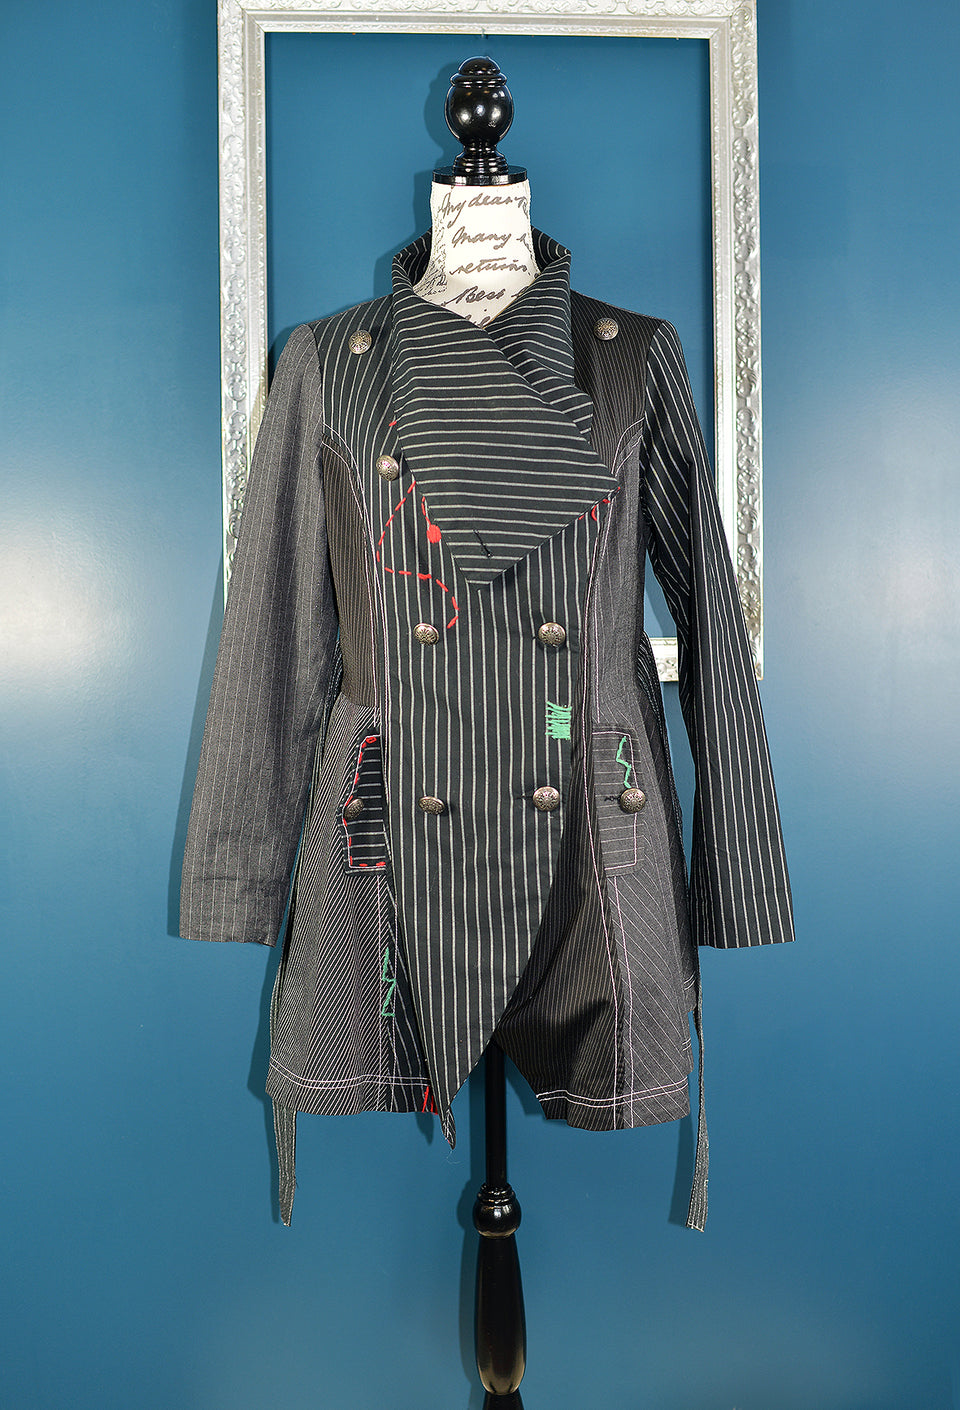 JO BROWNS Women's Black & Grey Stripes Steampunk Coat, Size 10. Pre-loved.